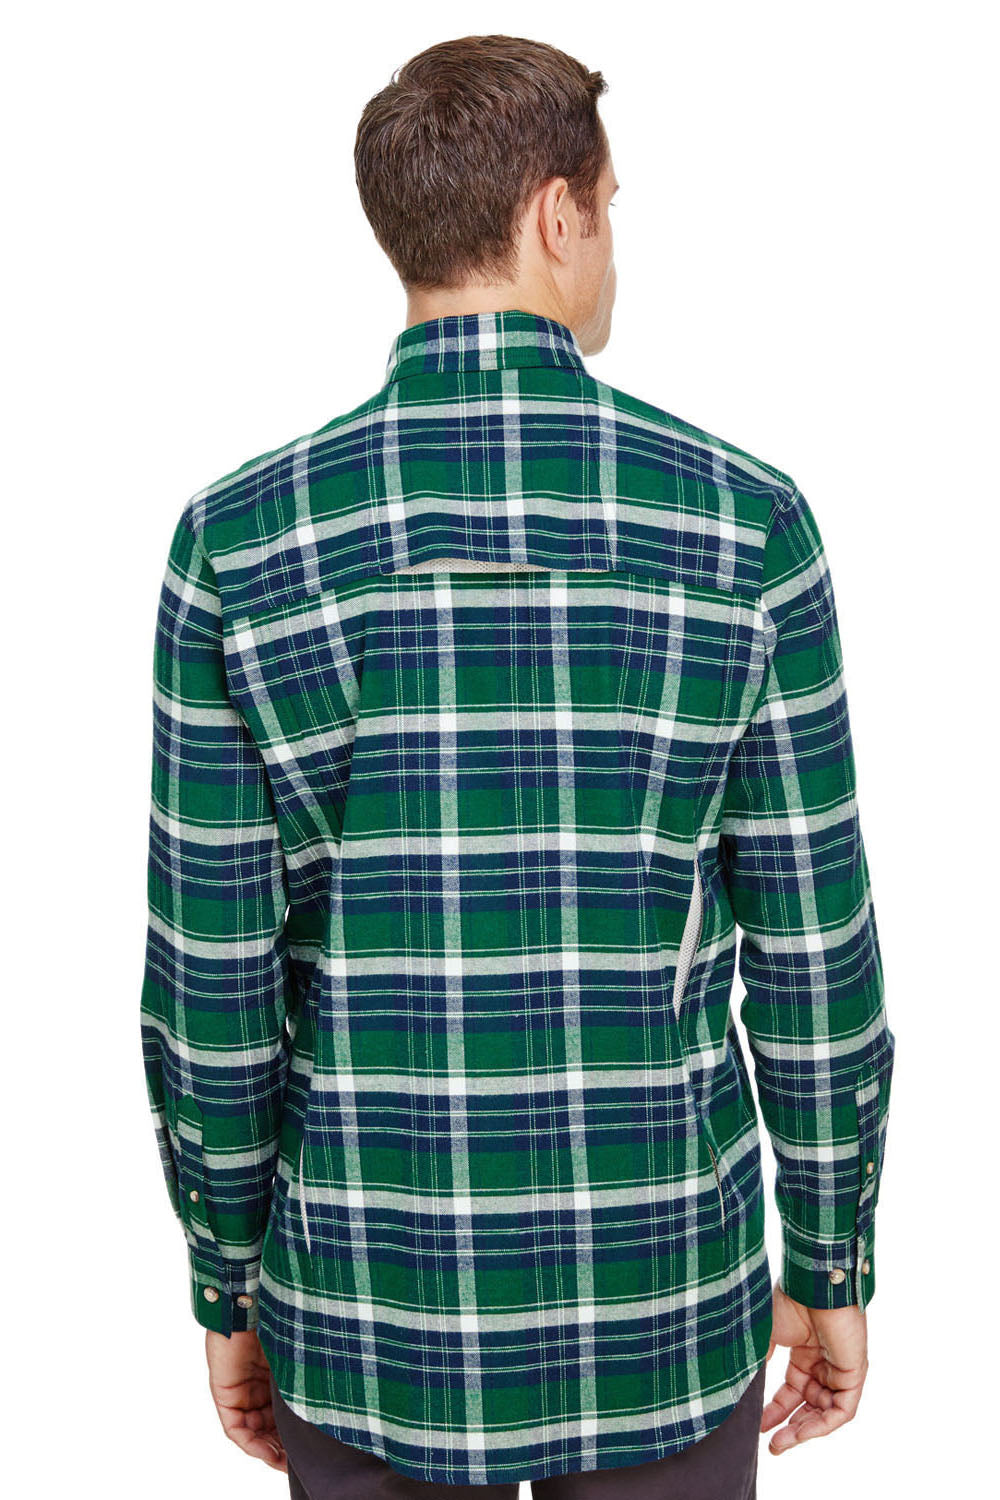 Backpacker BP7091 Mens Stretch Flannel Long Sleeve Button Down Shirt w/ Double Pockets Forest Green Back